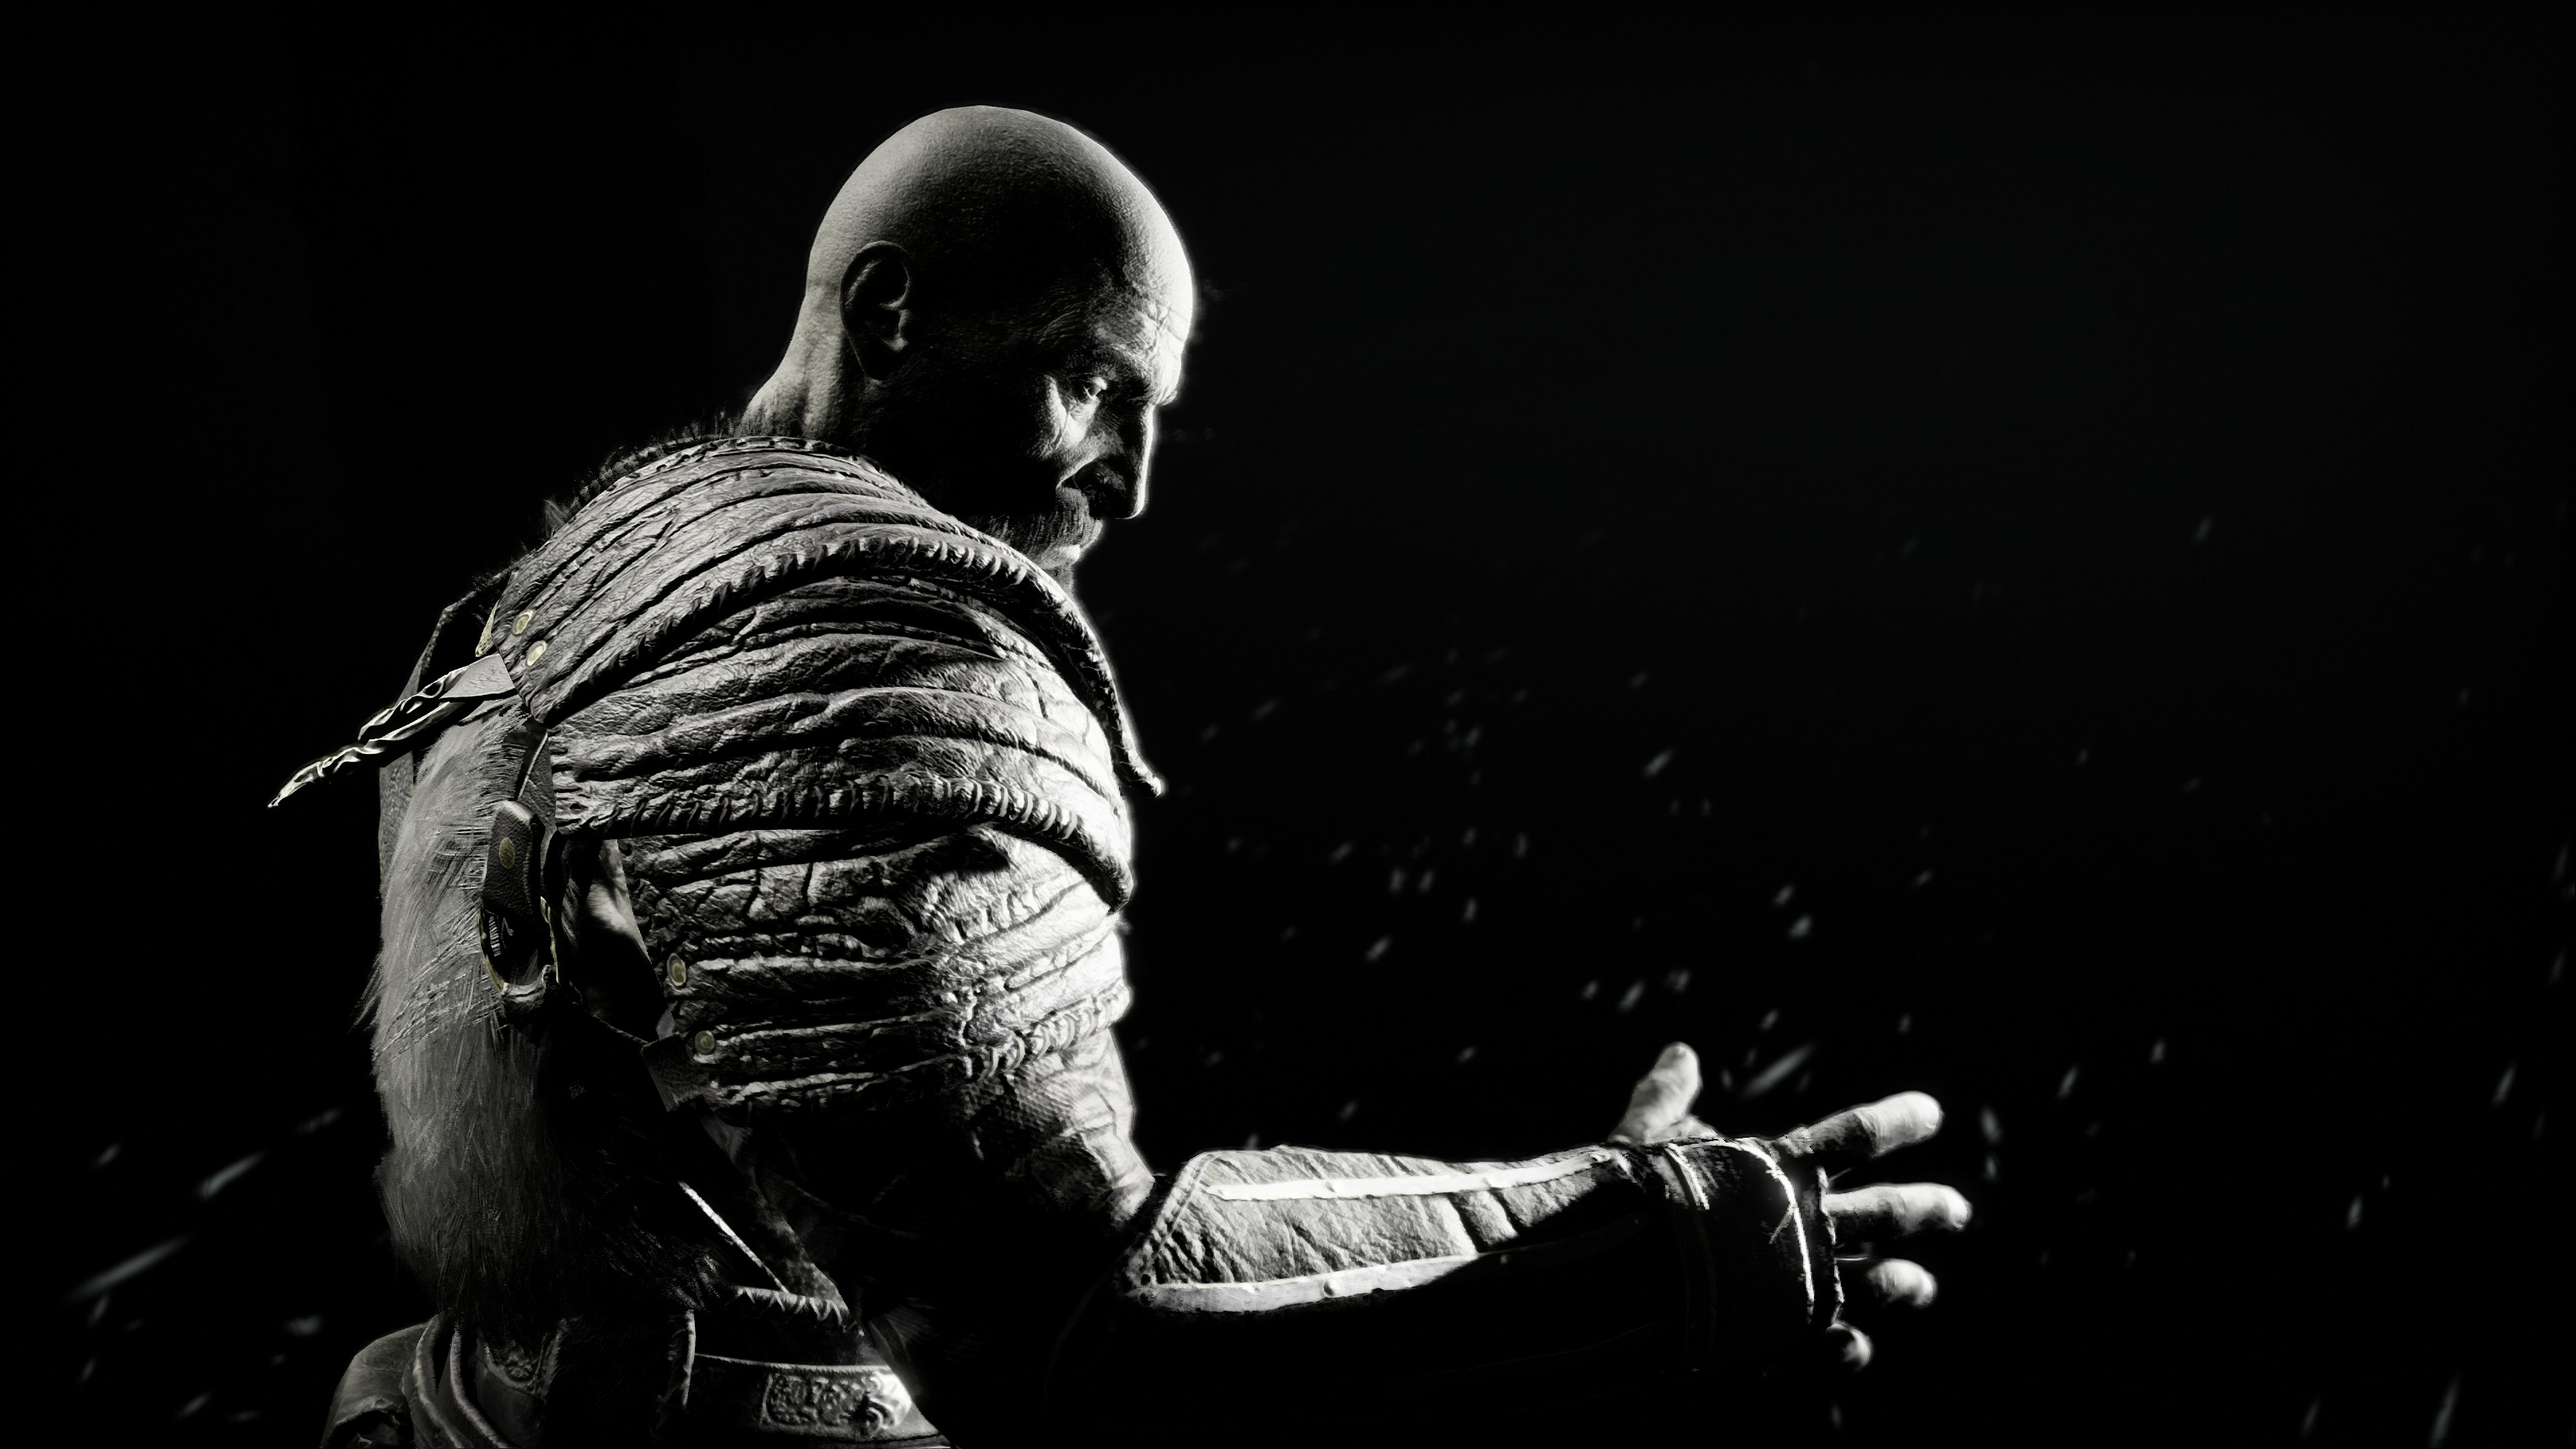 kratos in god of war 4k 1537691116 - Kratos In God Of War 4K - ps games wallpapers, monochrome wallpapers, kratos wallpapers, hd-wallpapers, god of war wallpapers, god of war 4 wallpapers, games wallpapers, black and white wallpapers, 4k-wallpapers, 2018 games wallpapers